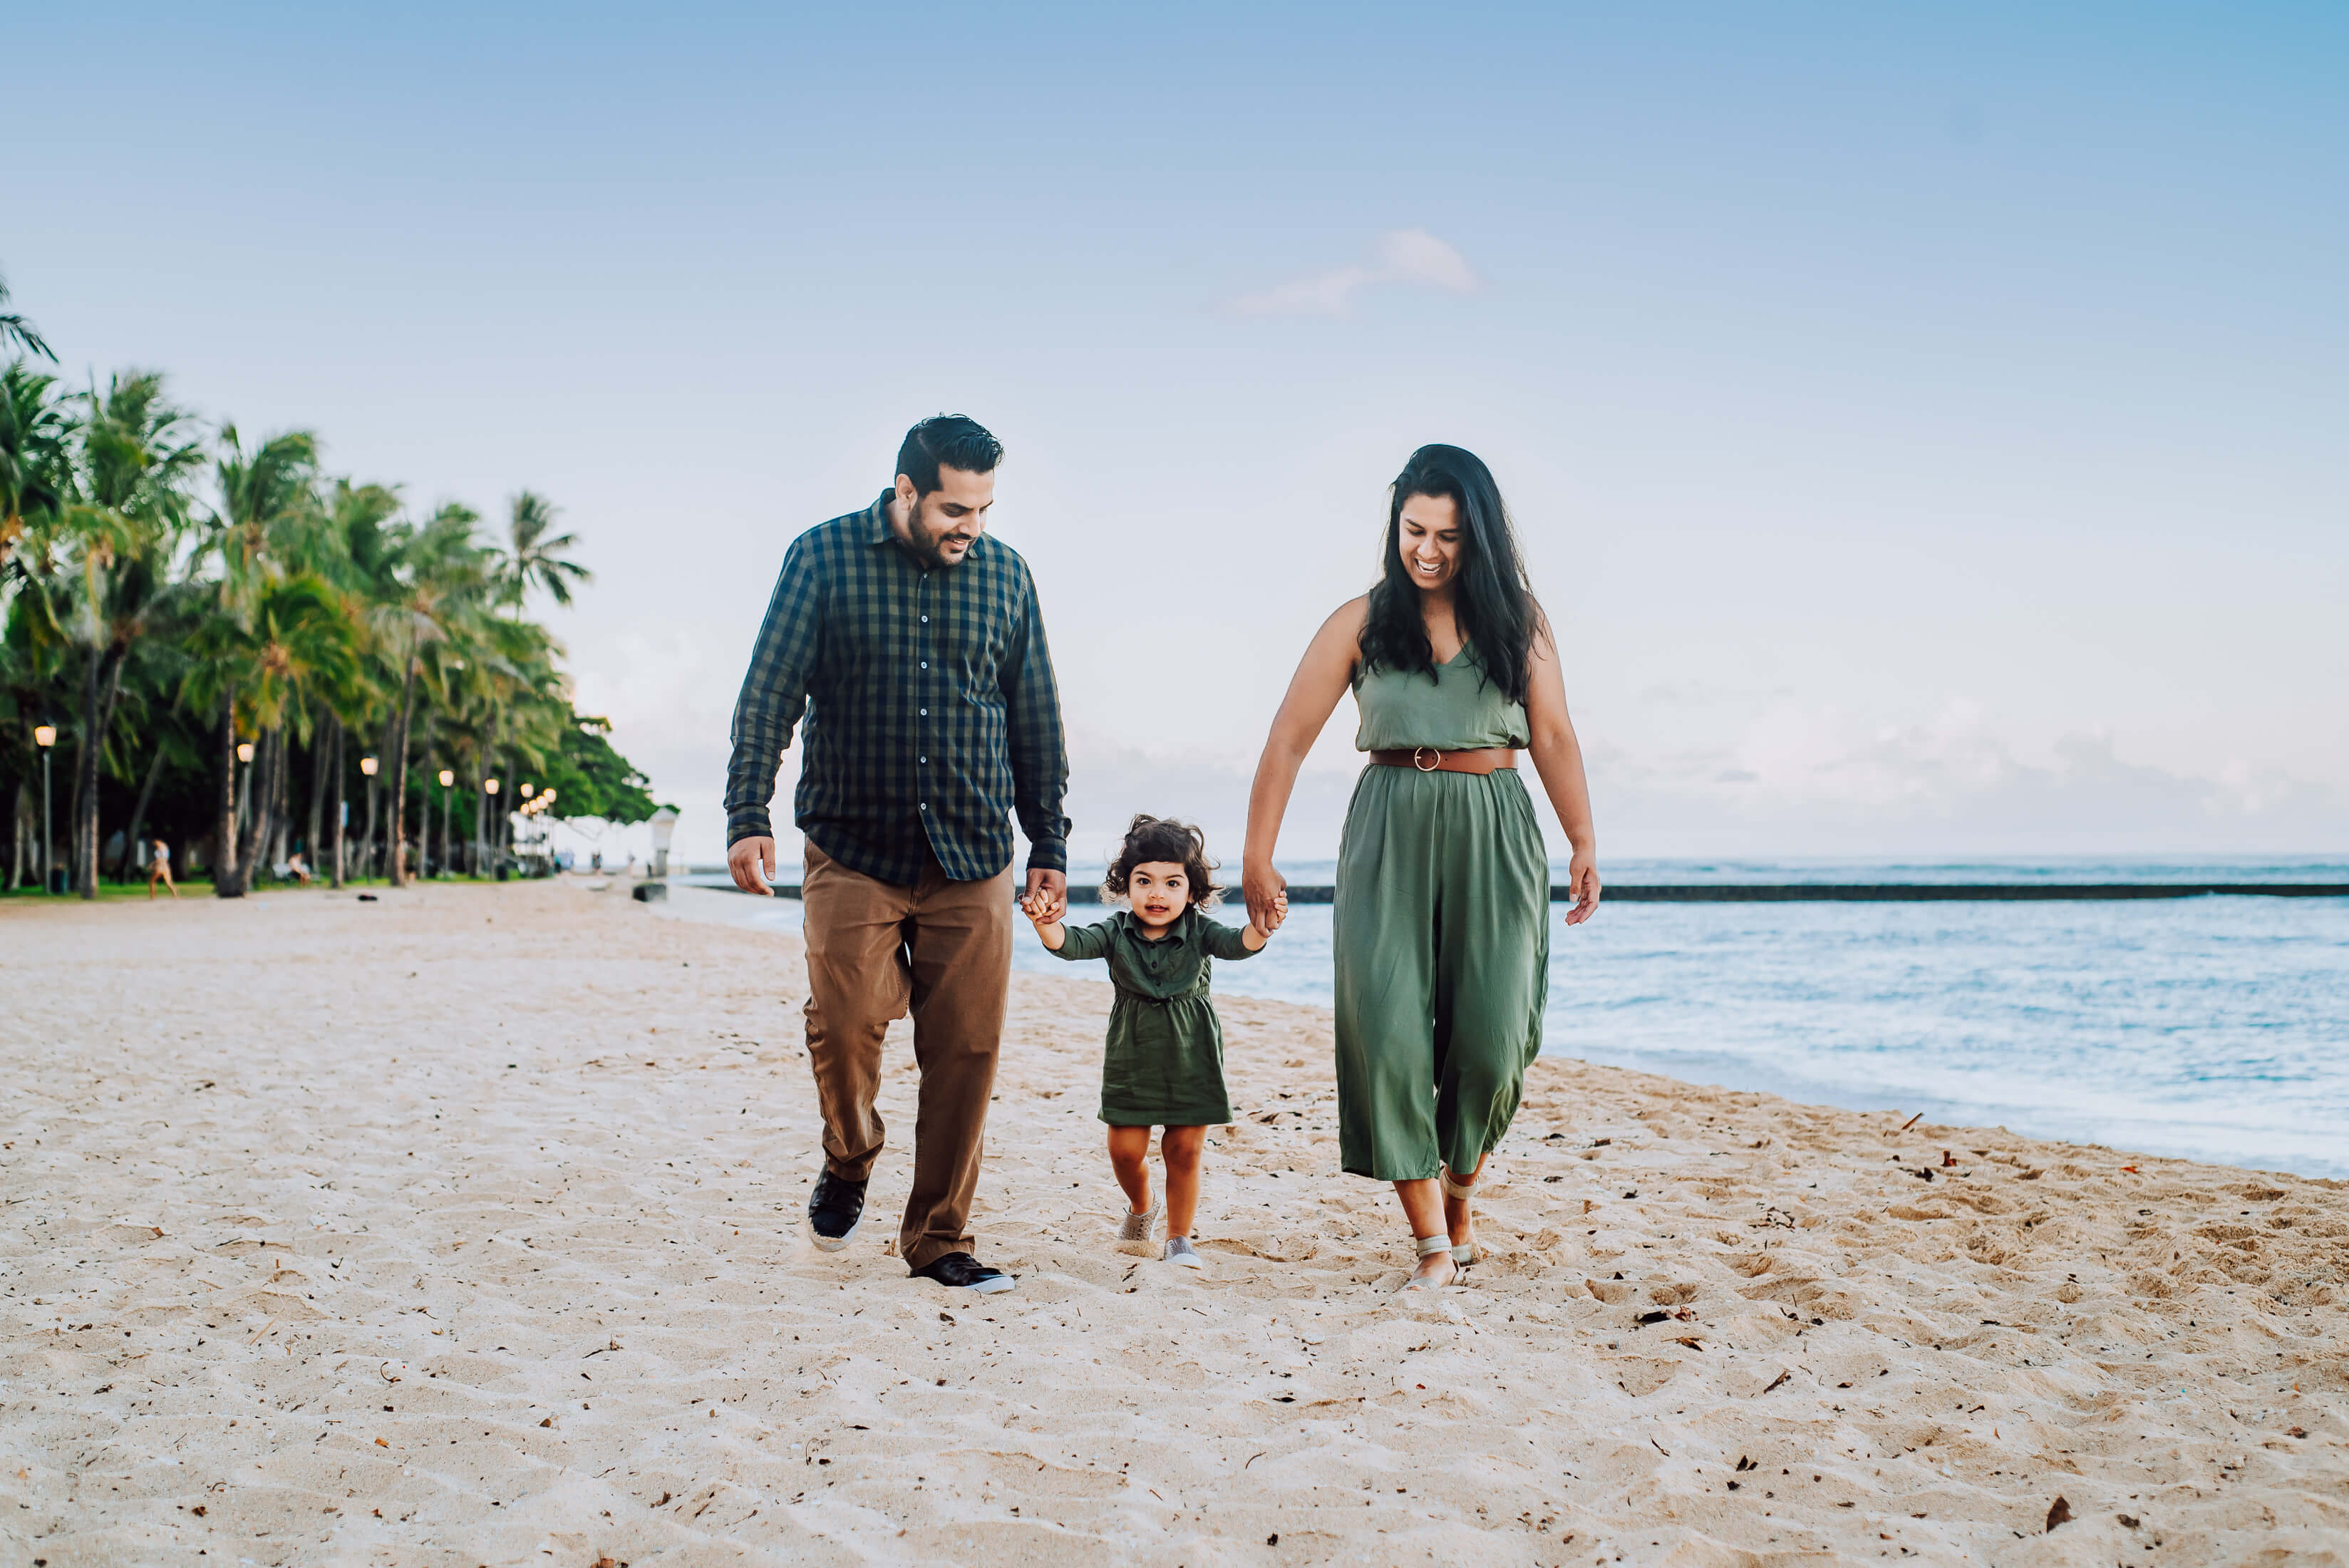 A family holding hands, laughing and walking on the beach in Honolulu, Hawaii